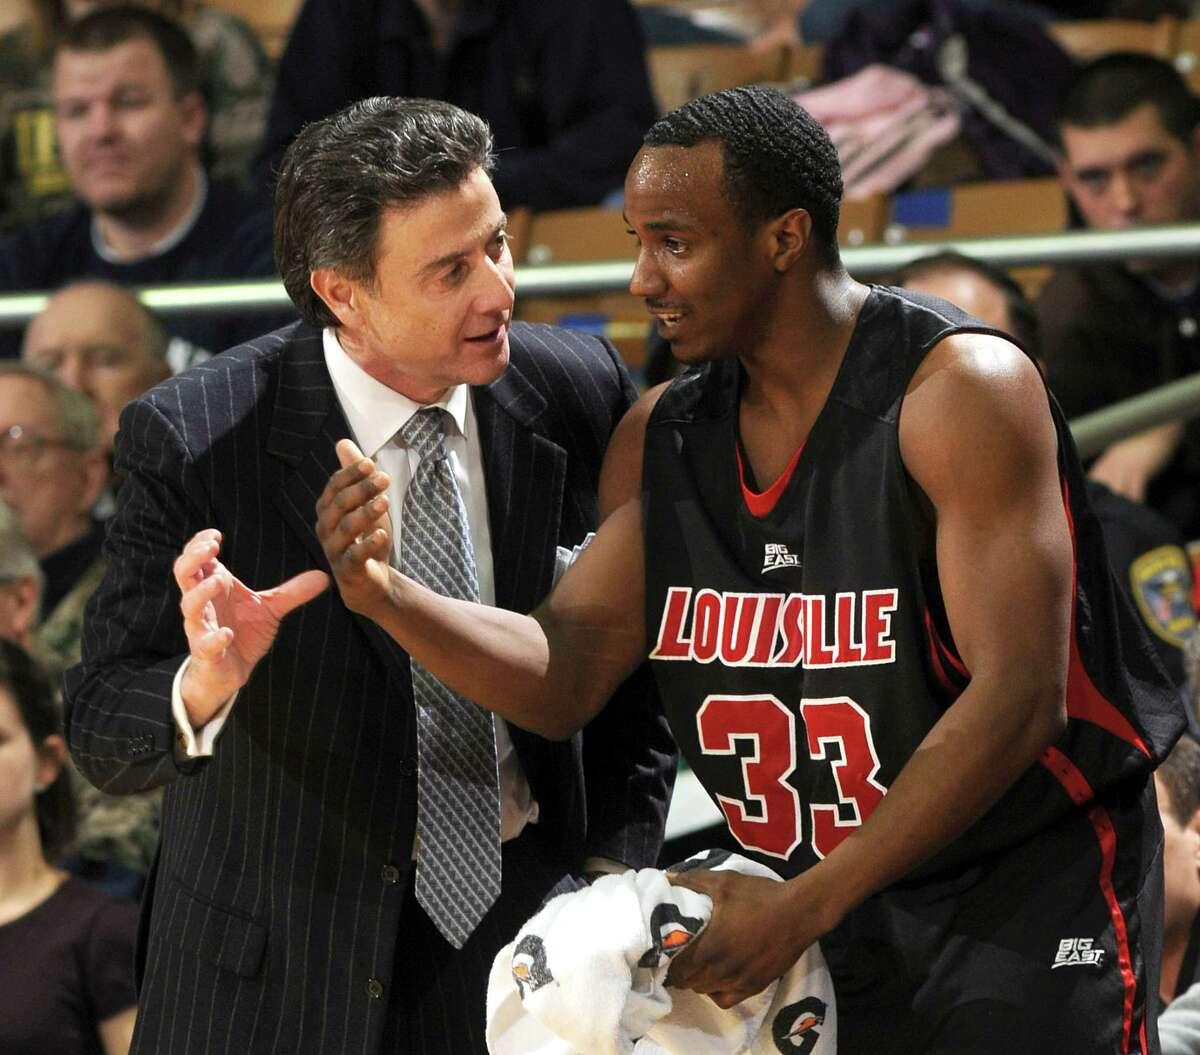 Louisville coach Rick Pitino, left, and former Louisville assistant coach Andre McGee, right.